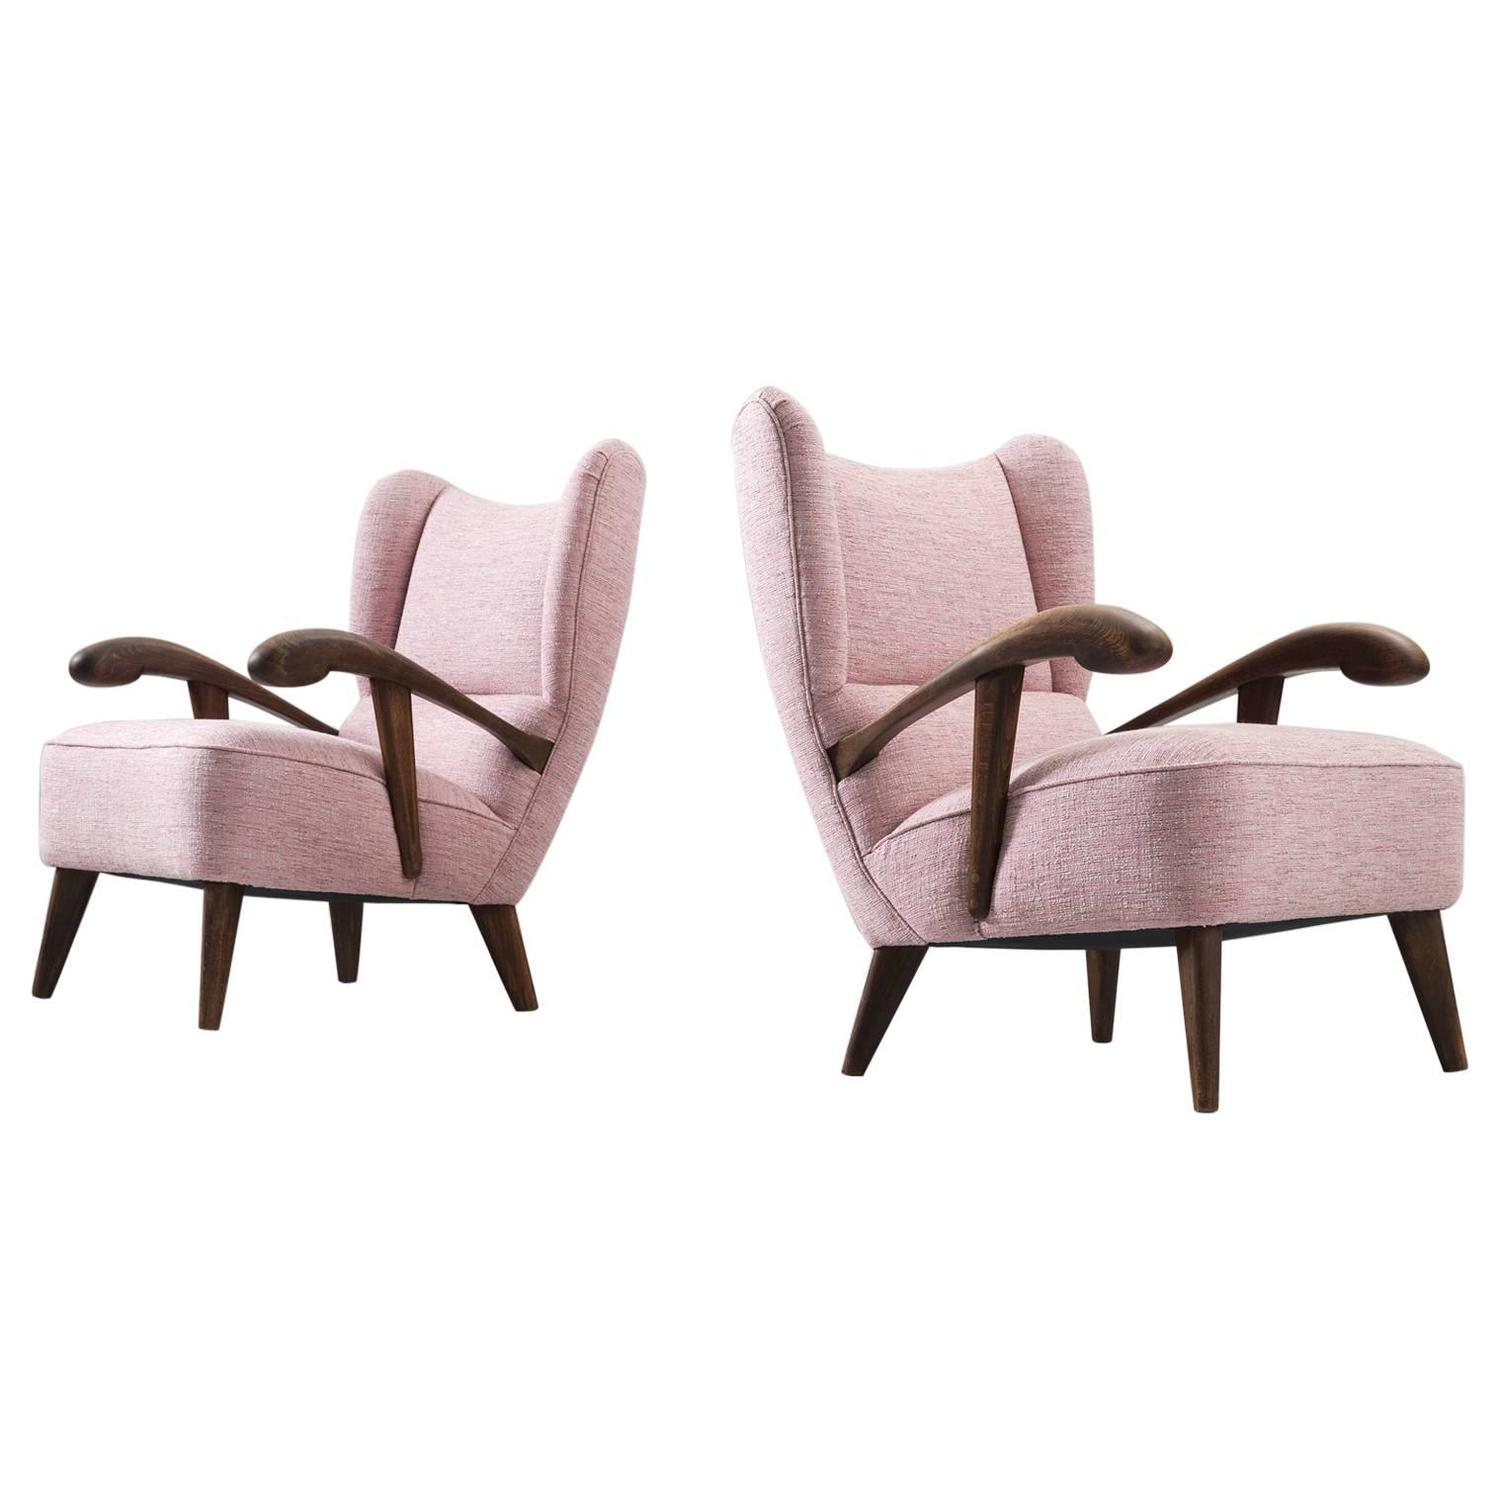 Pair of reupholstered lounge chairs with sculptural wooden for Reupholstered chairs for sale